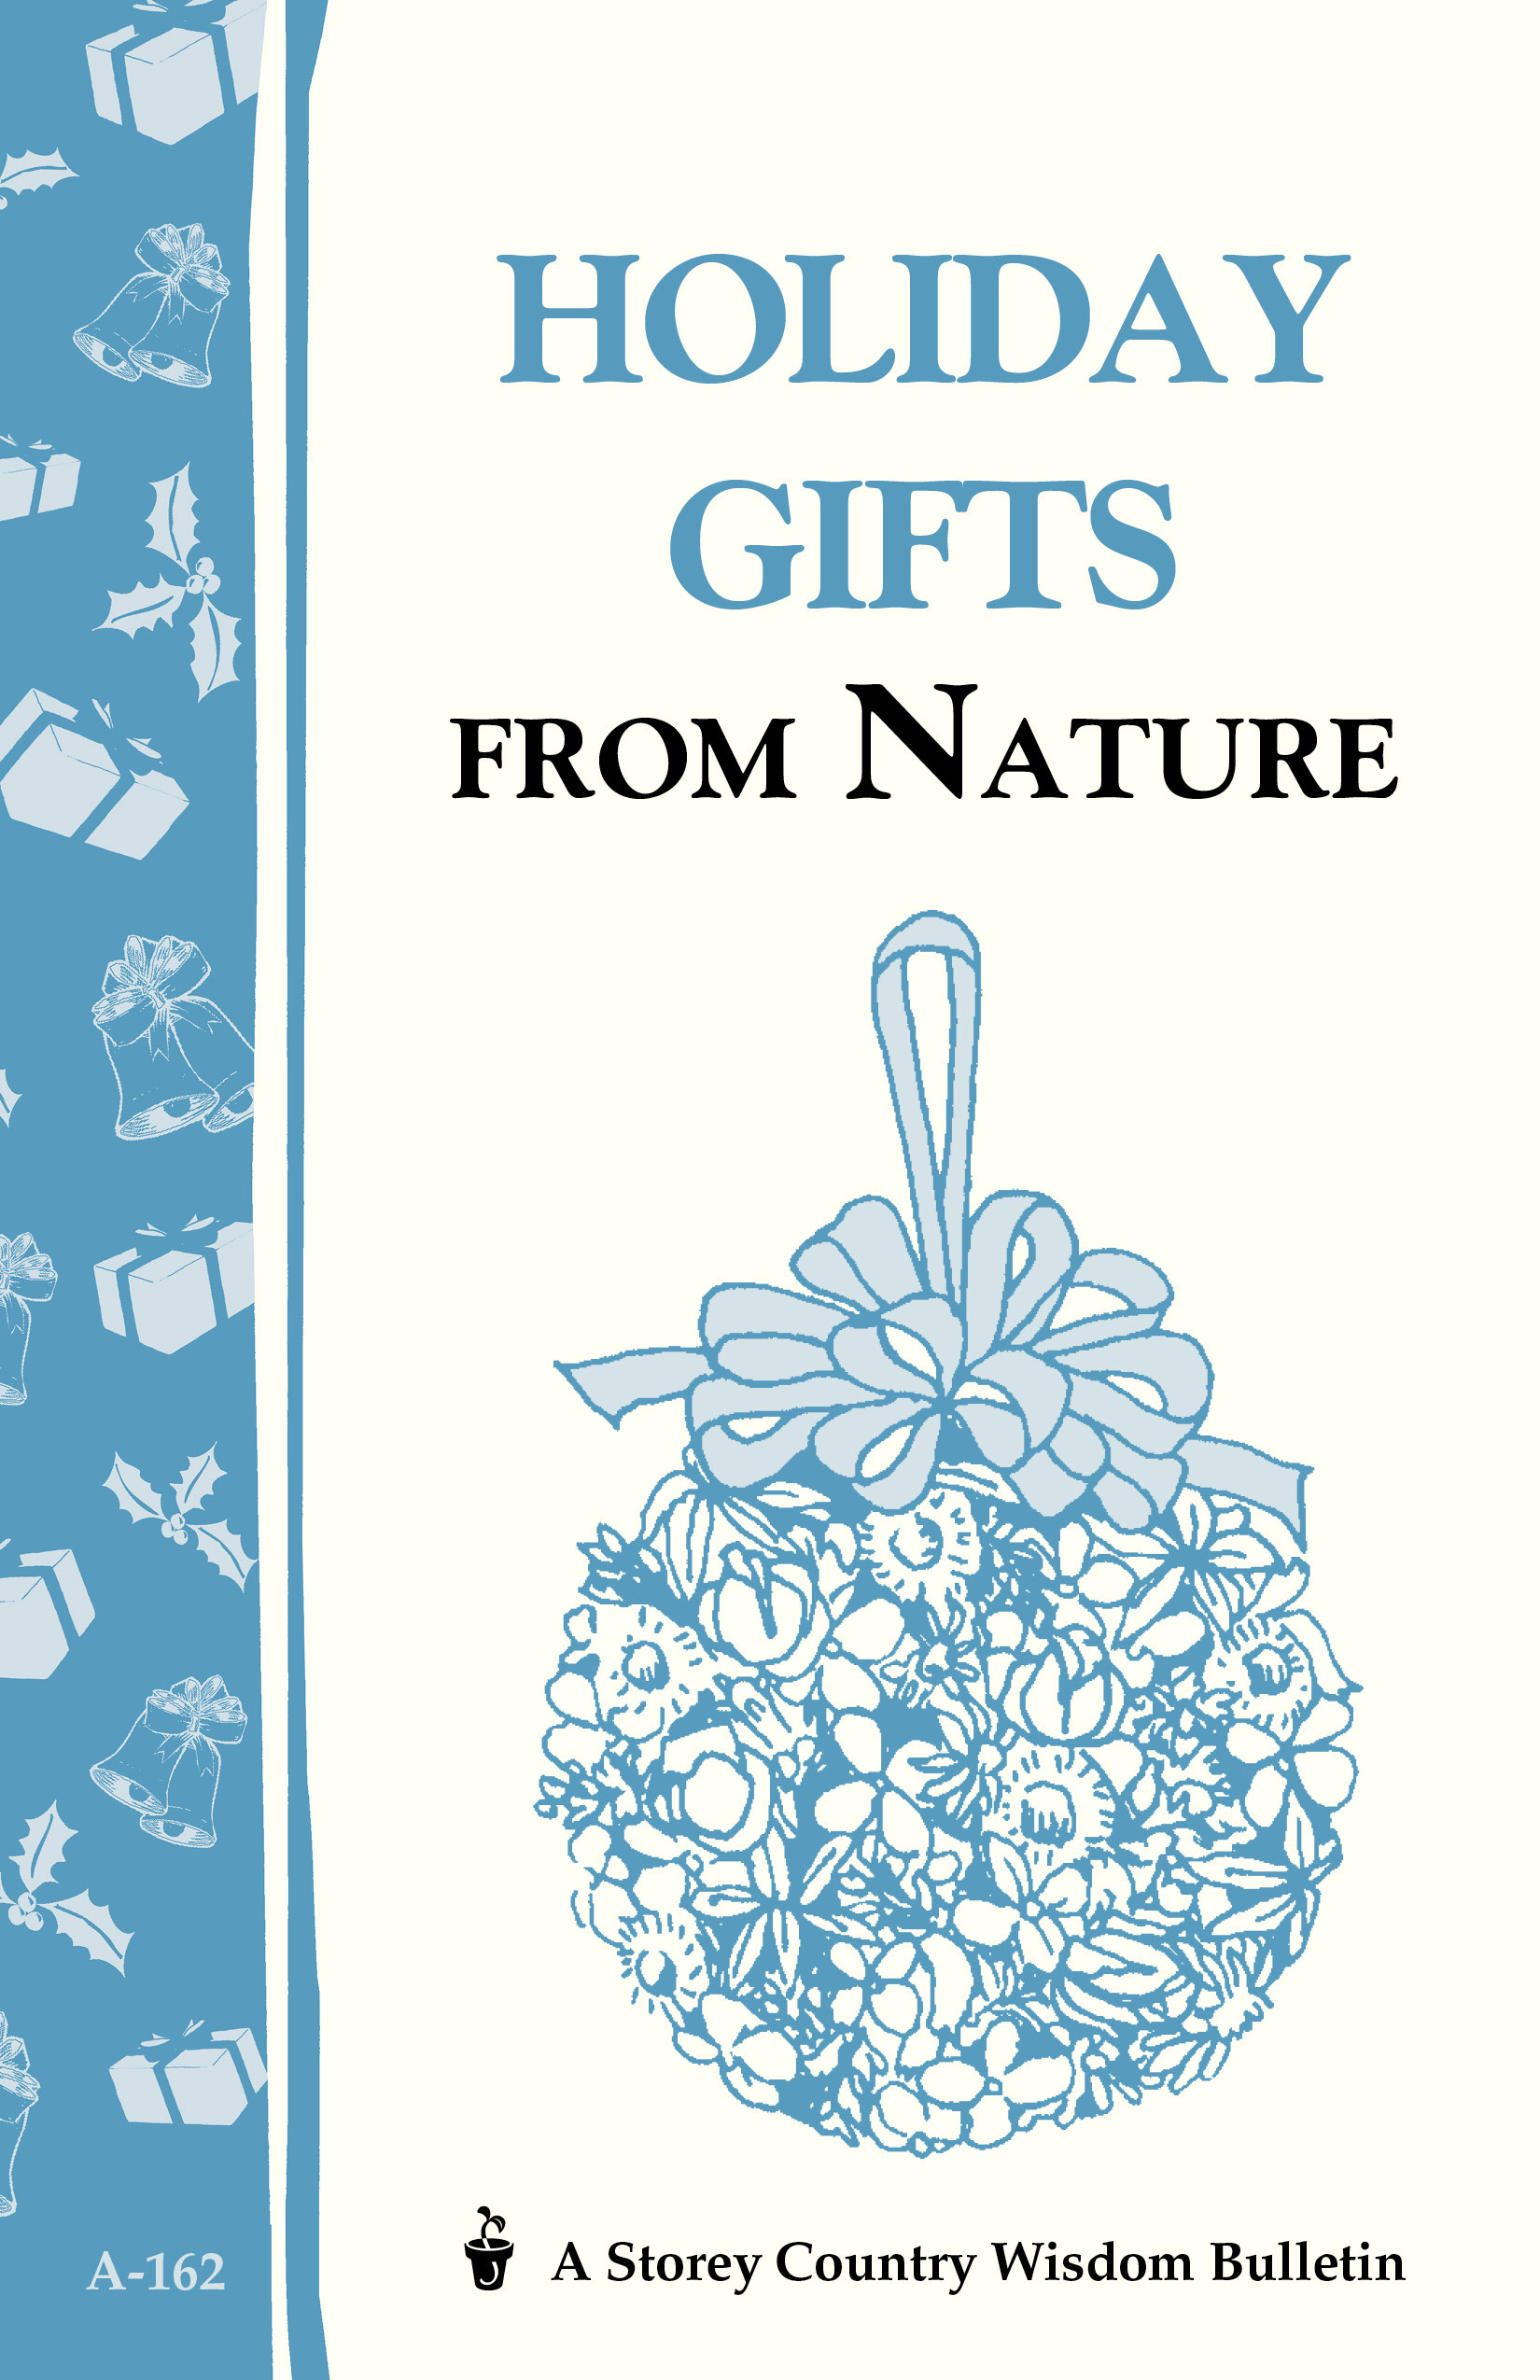 Holiday Gifts from Nature Storey's Country Wisdom Bulletin A-162 - Cornelia M. Parkinson